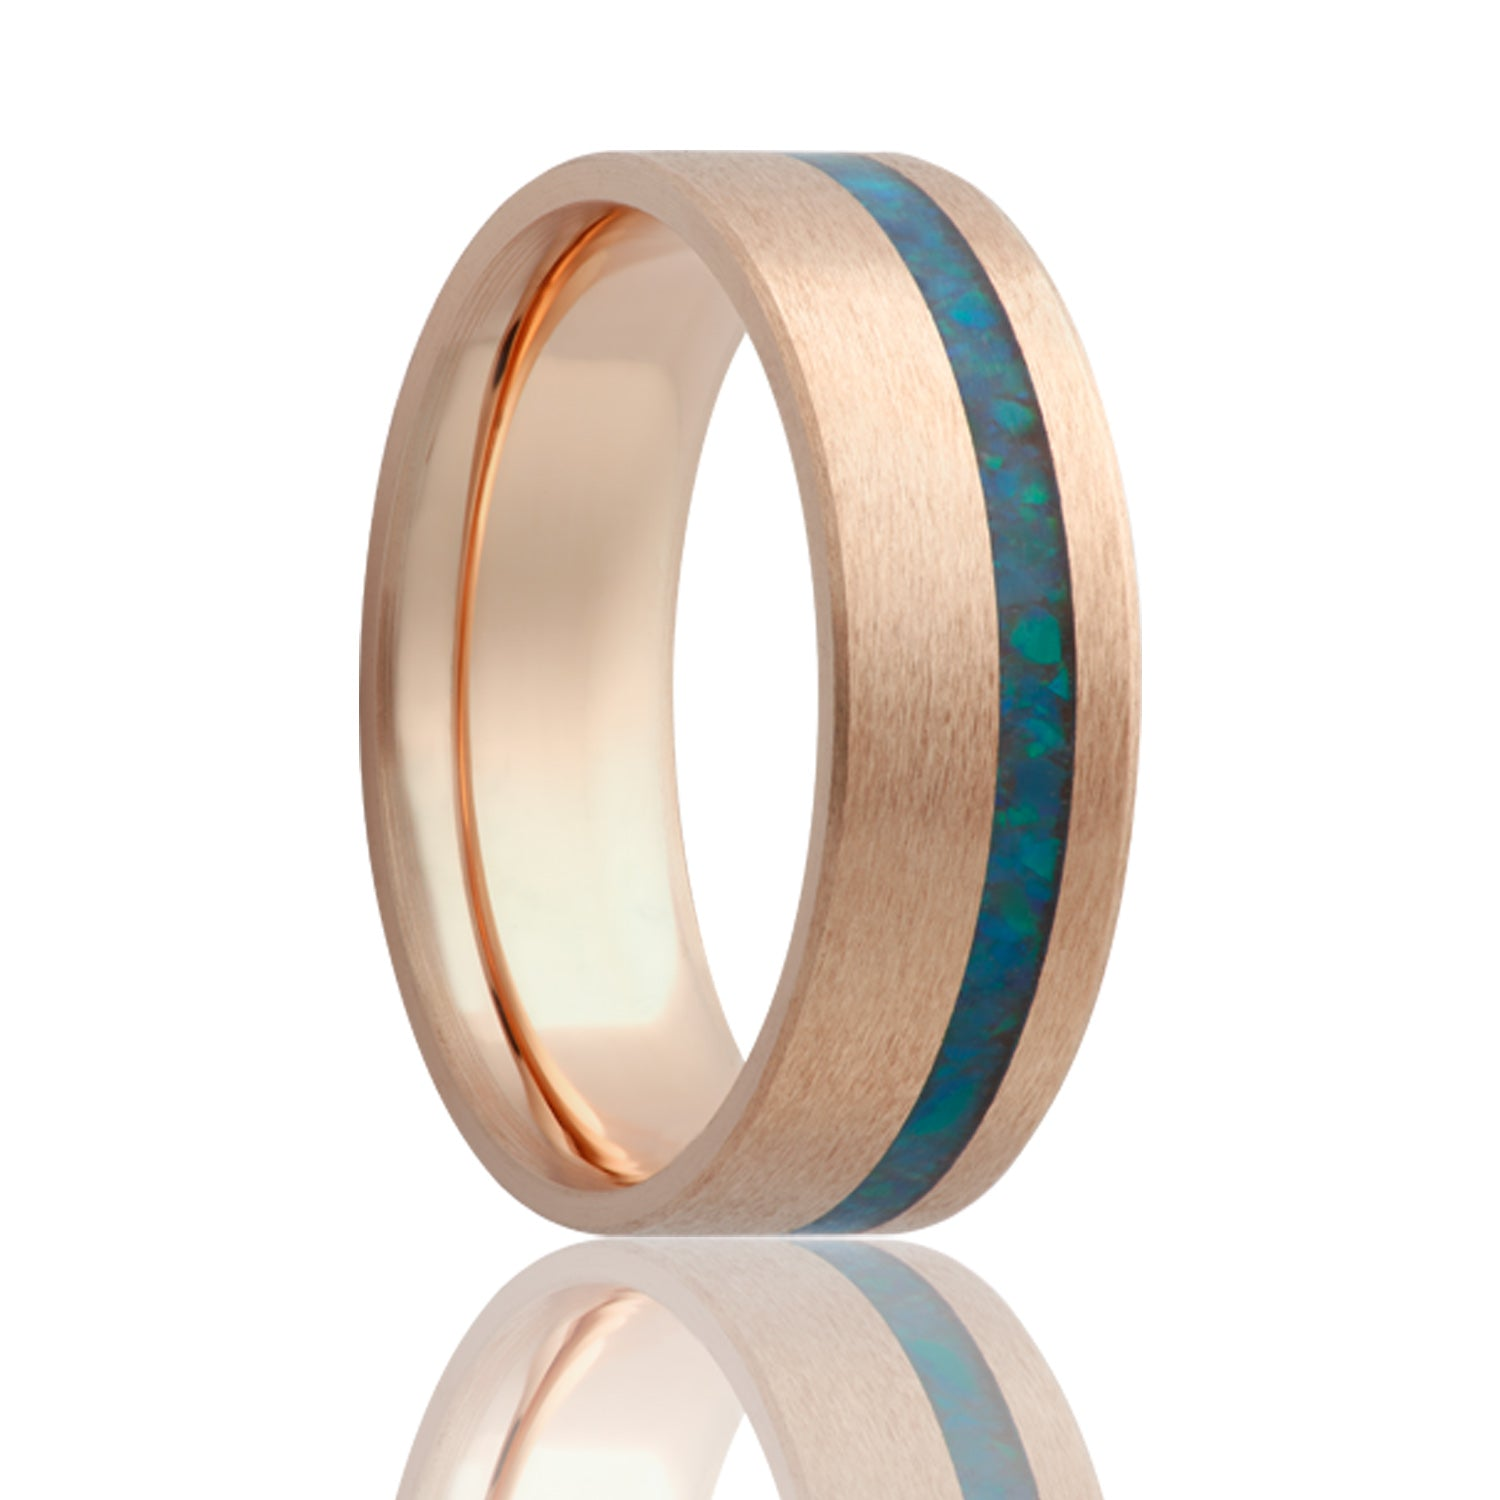 OCEANIC | Couples Gold Wedding Ring | Rose Gold with Opal Inlay | 6mm